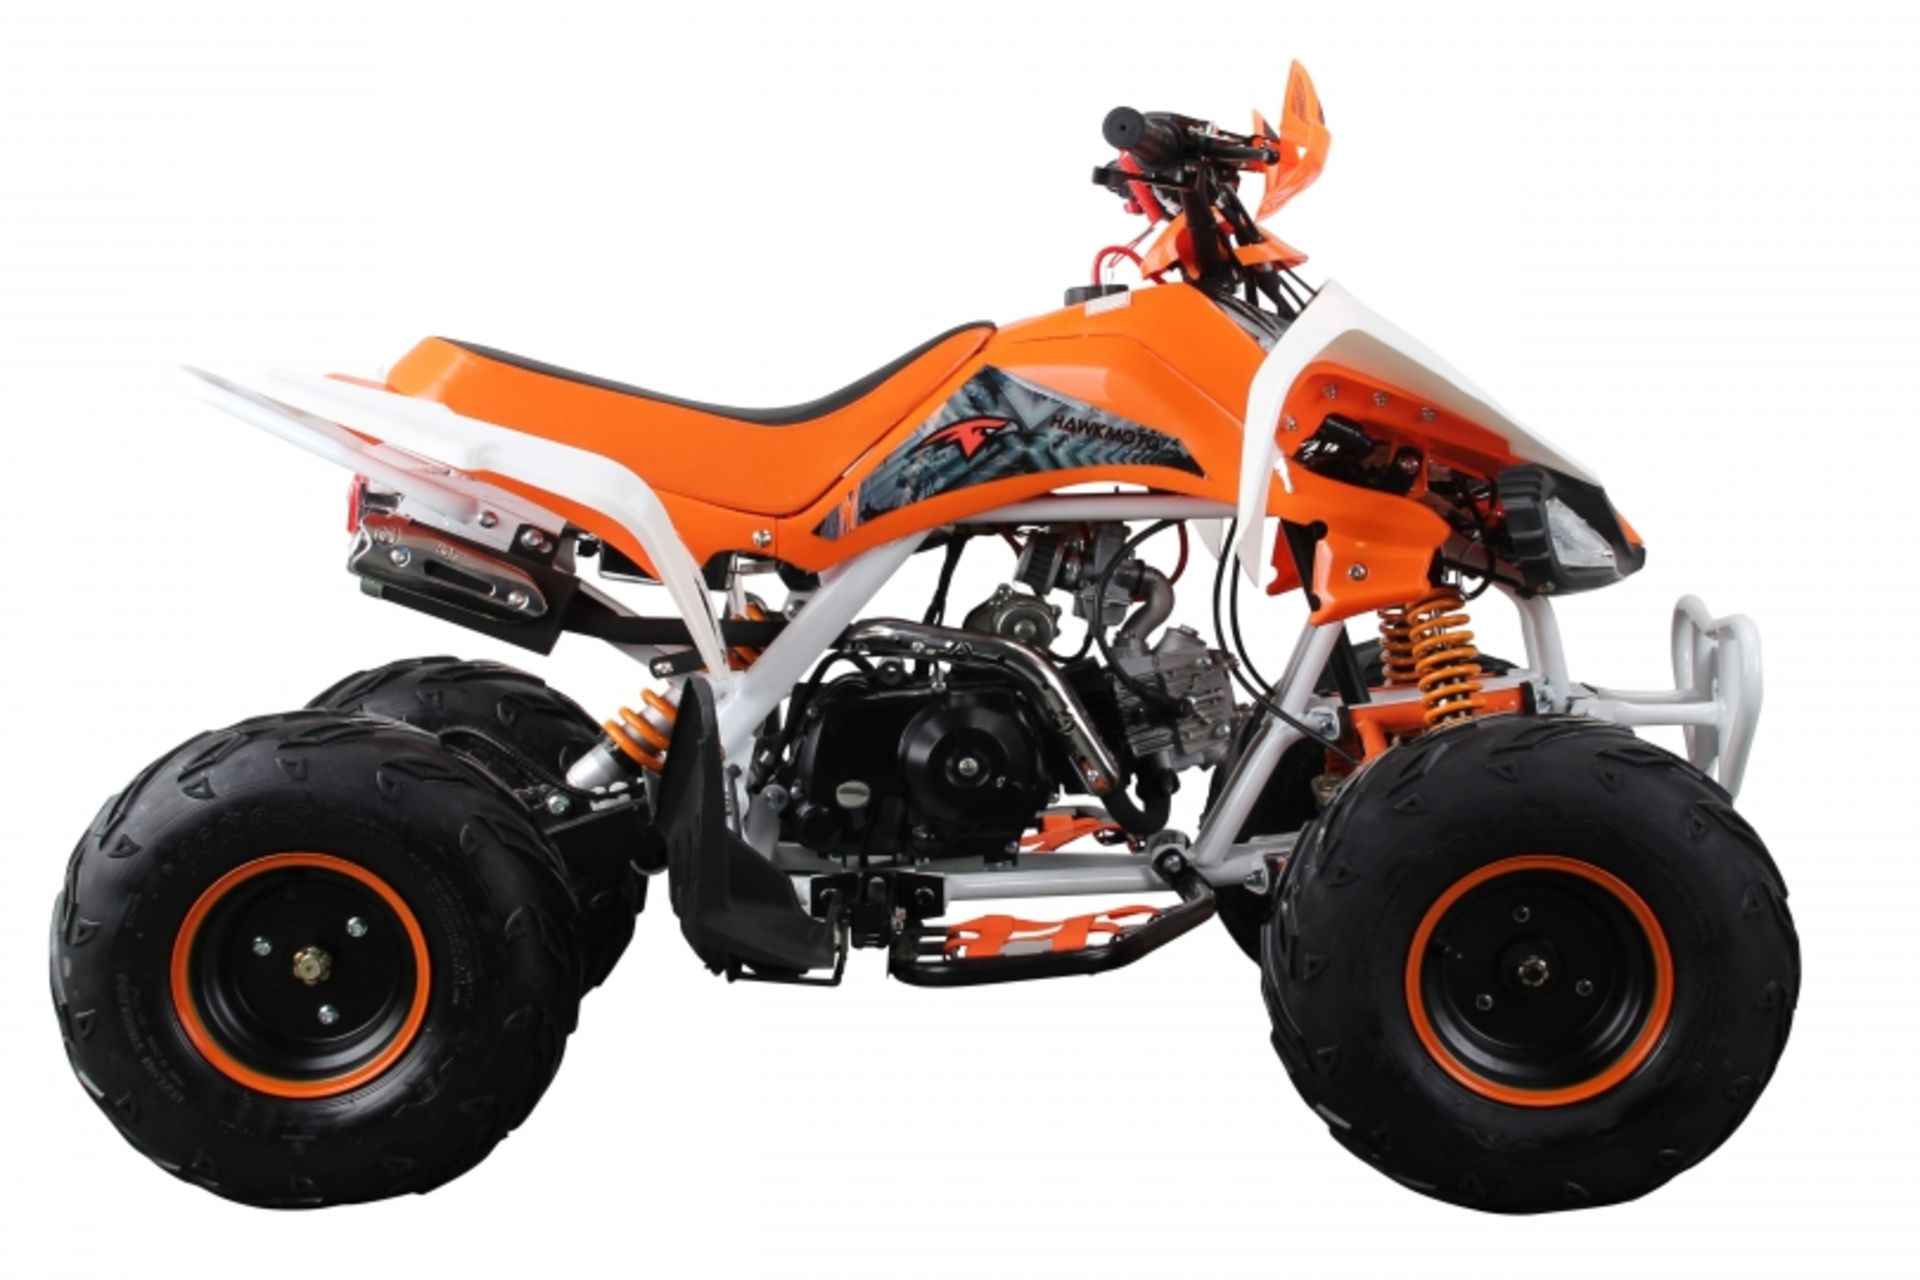 Lot 23021 - V Brand New 125cc Interceptor SV2 4 Stroke Quad Bike With Reverse Gear - Double Front Suspension/